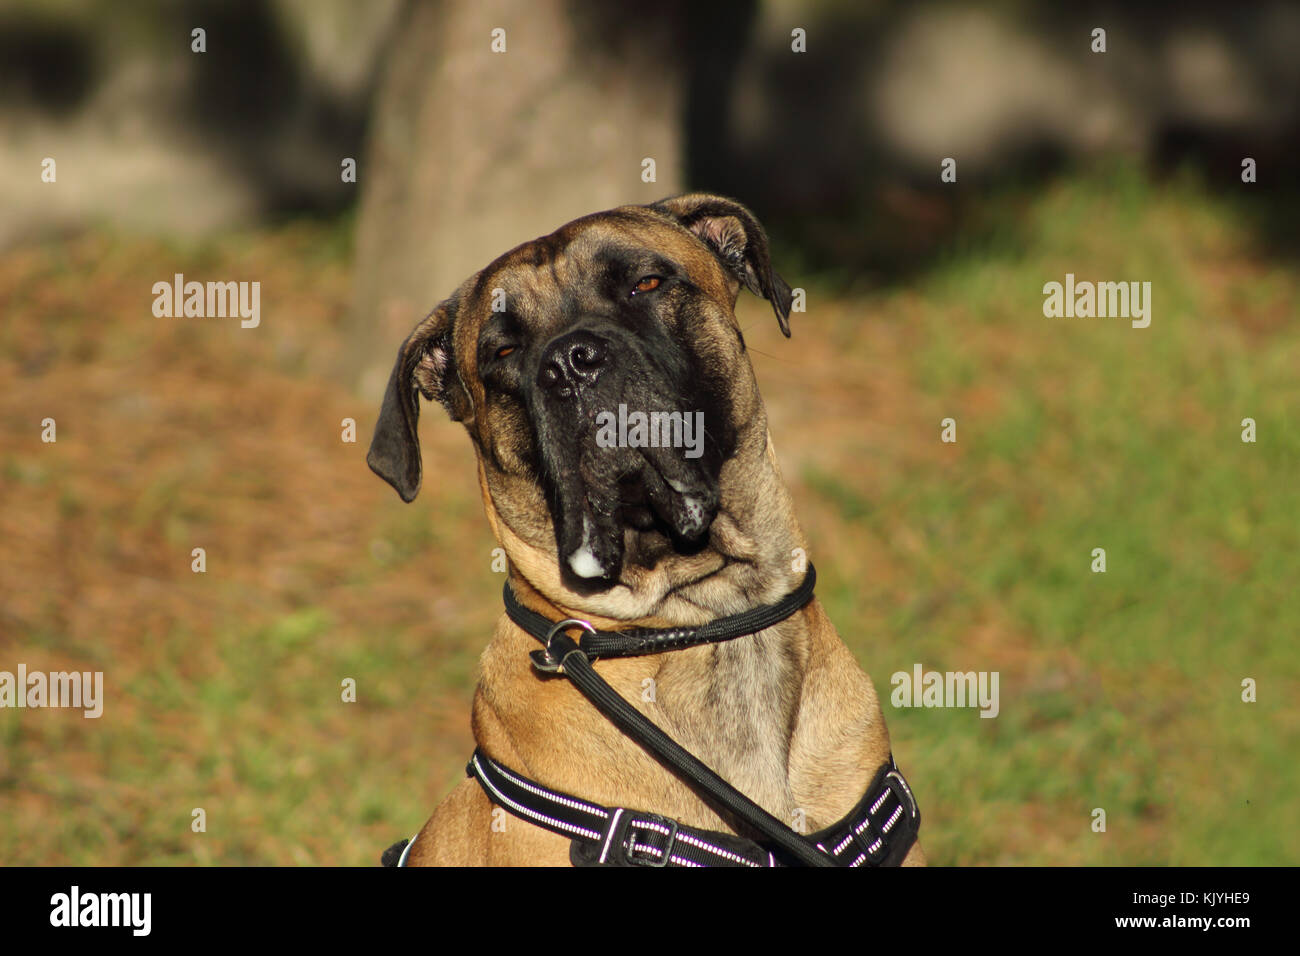 portrait of a  cane corso dog with tender eyes and mouth filled with drool - Stock Image